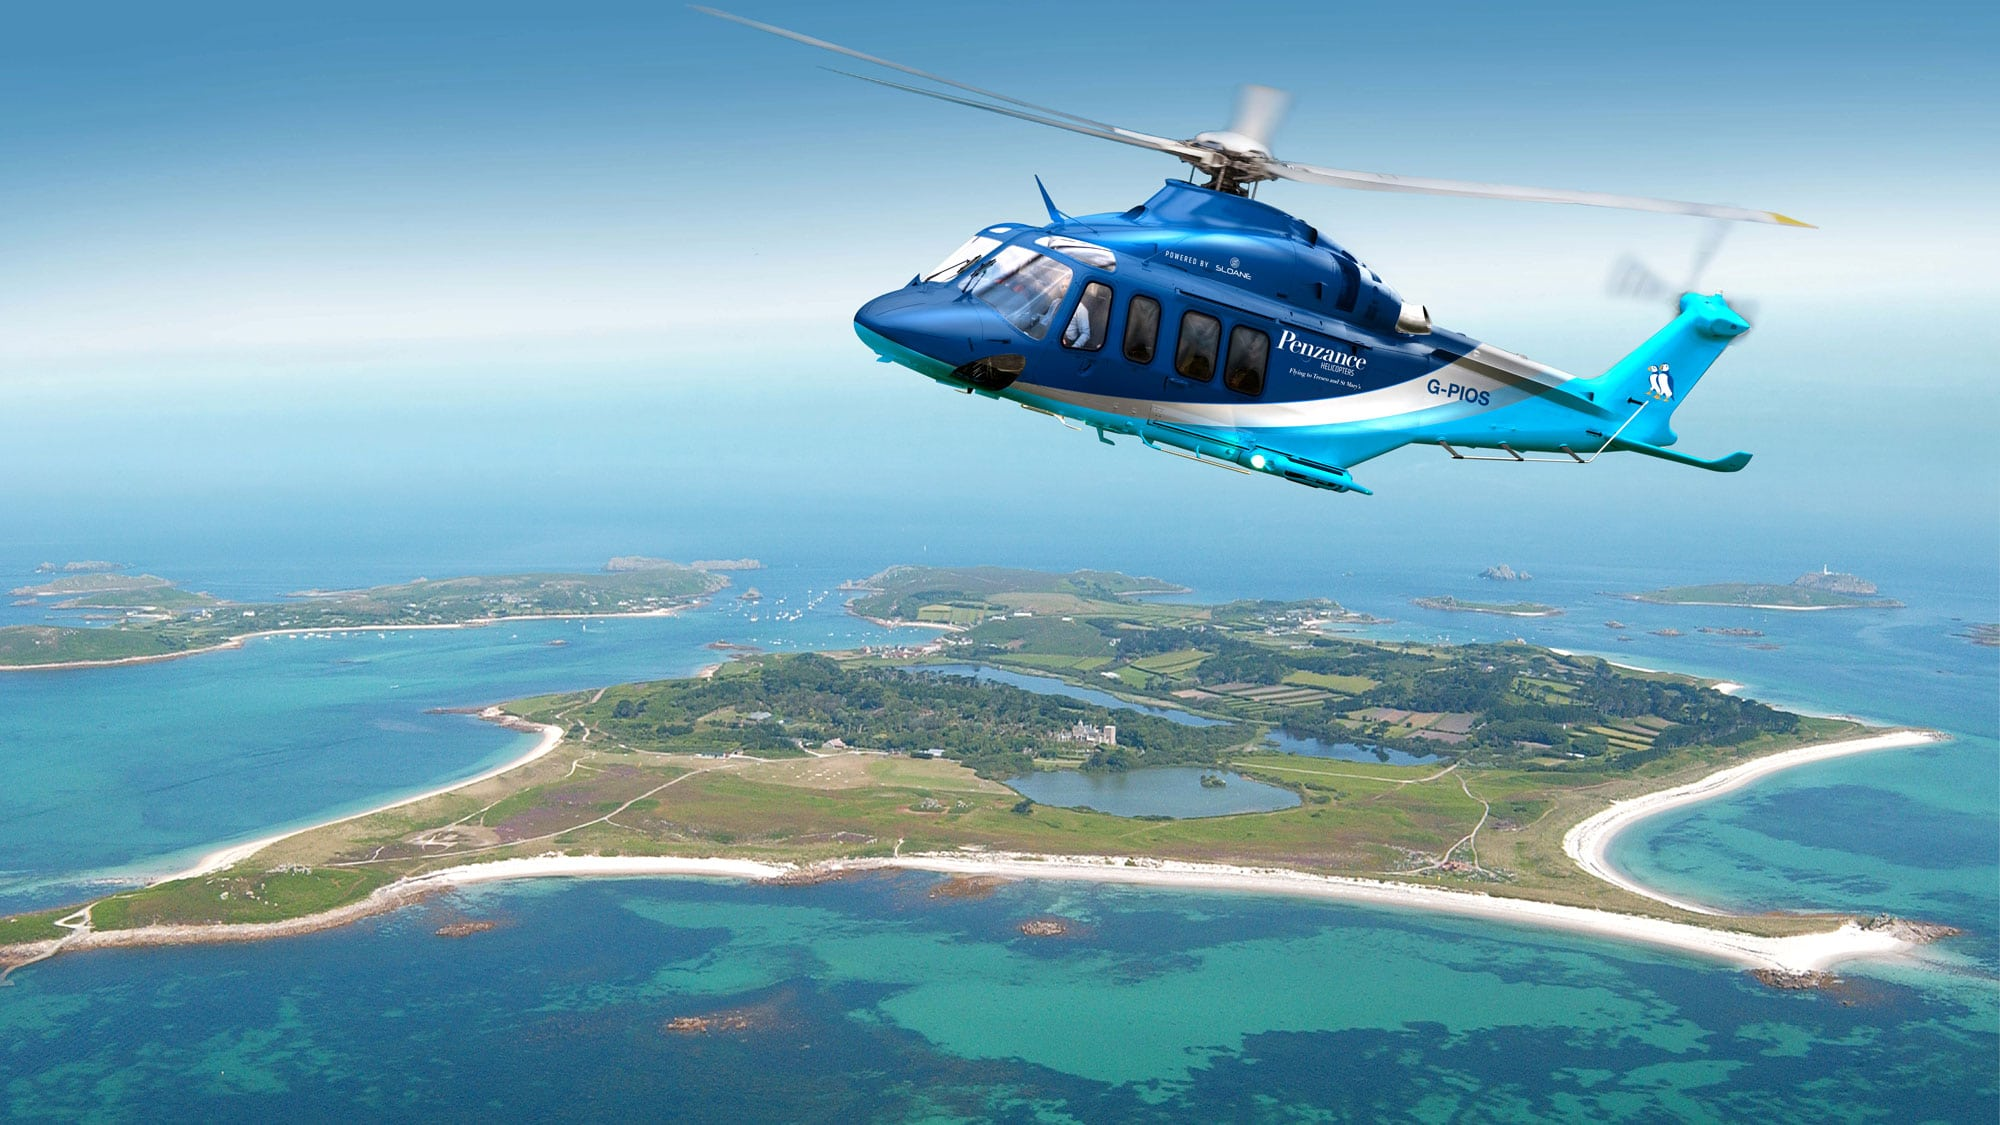 Penzance Helicopter over Tresco on the Isles of Scilly